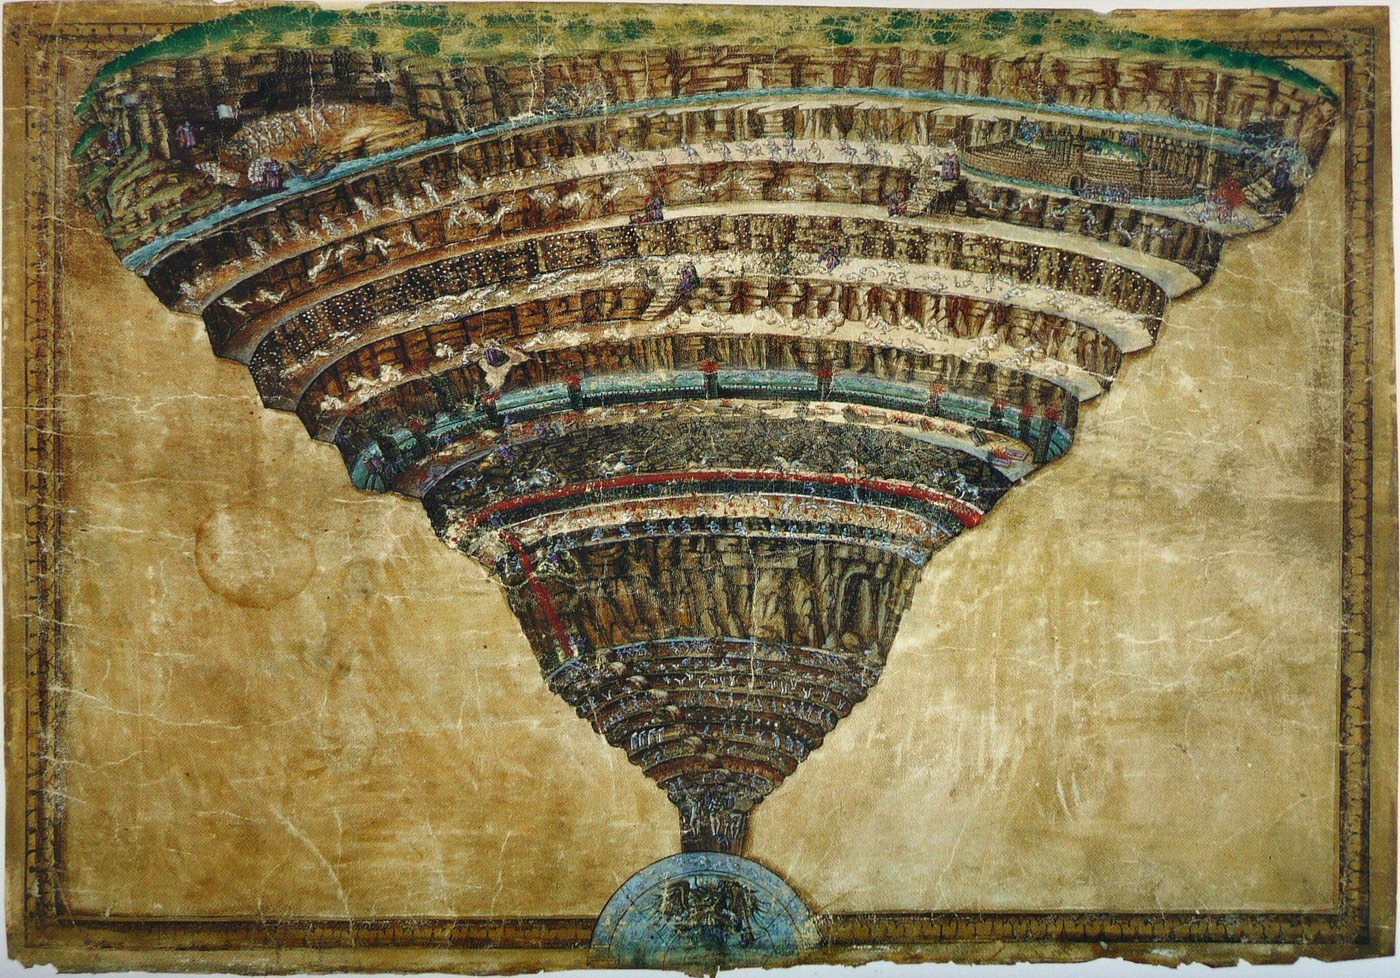 The Map of Hell by Sandro Botticelli.